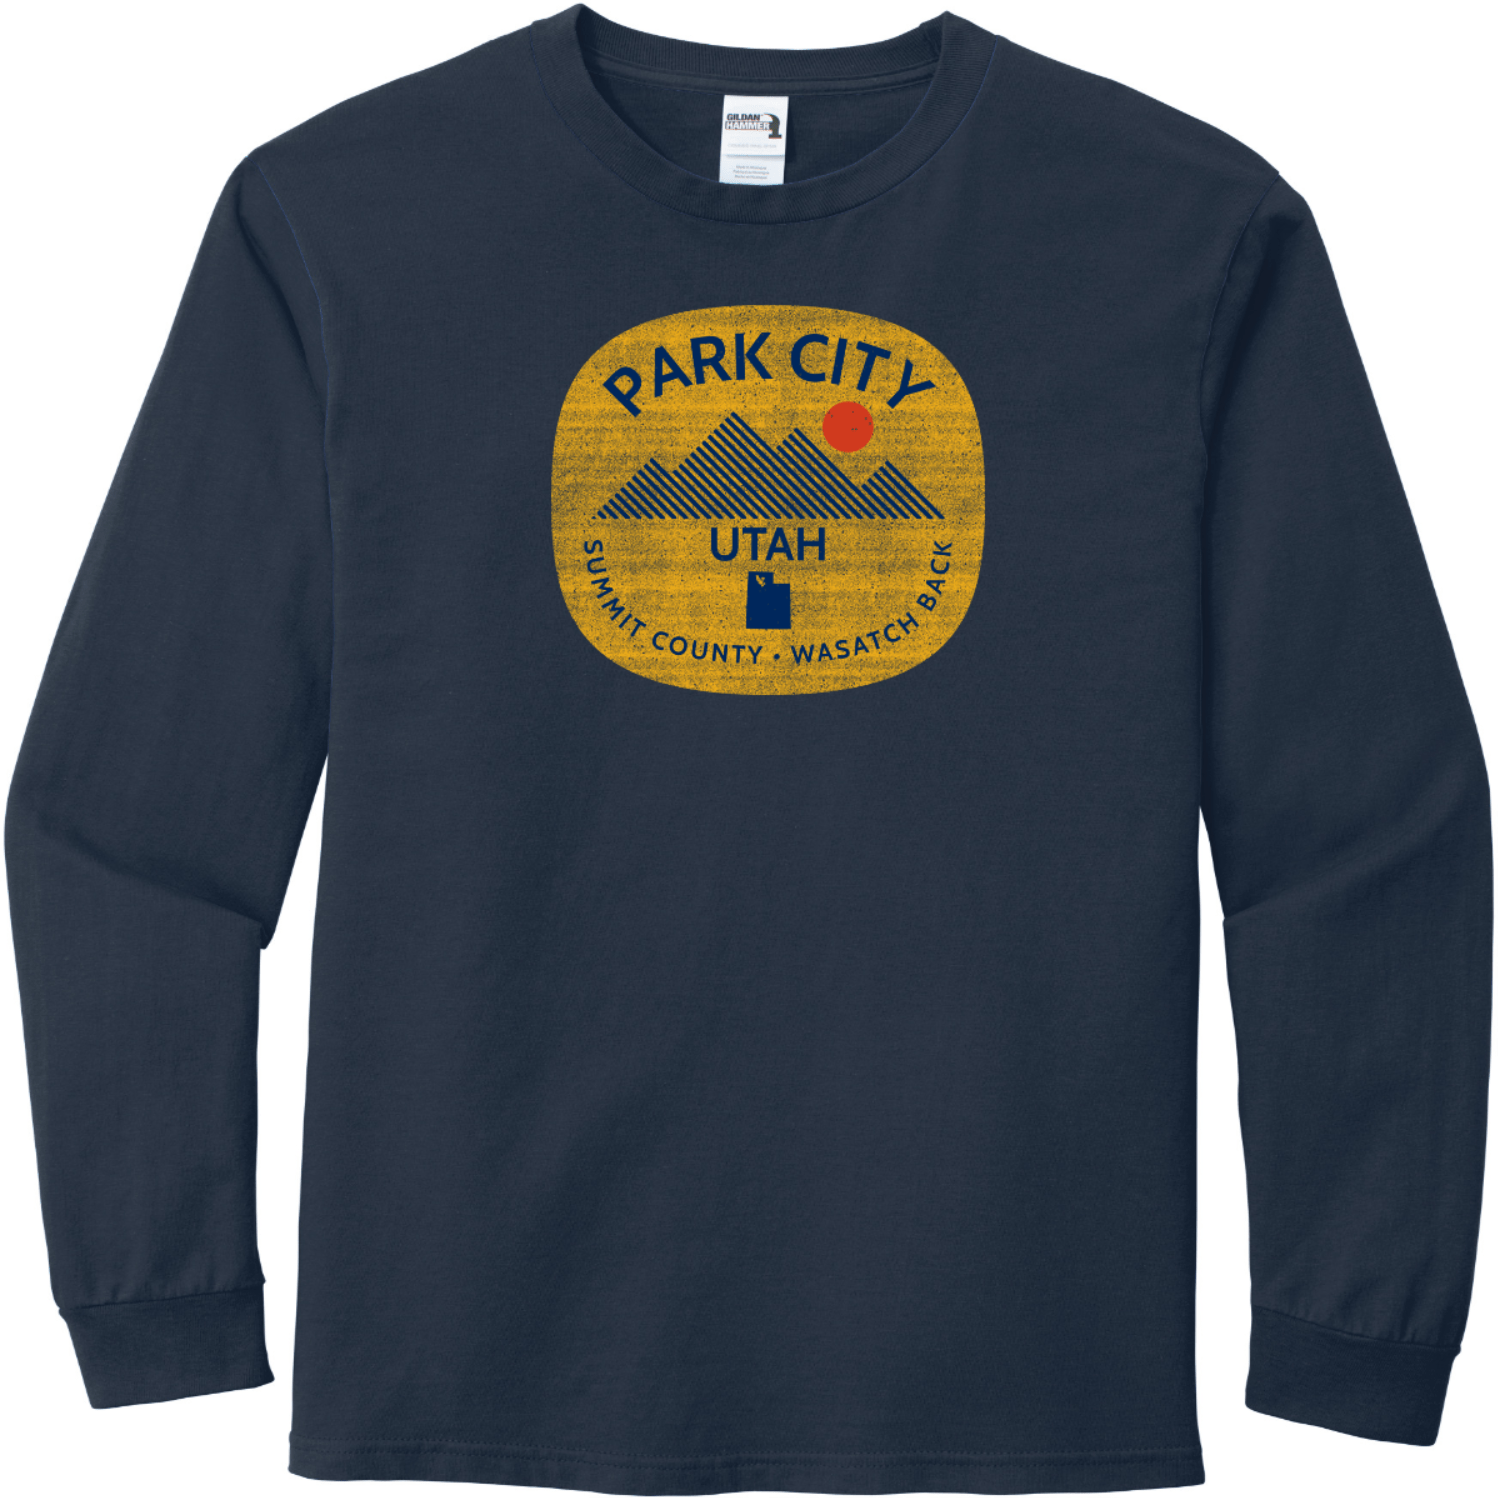 Park City Utah Long Sleeve T-Shirt Sport Dark Navy Gildan Hammer Long Sleeve T Shirt